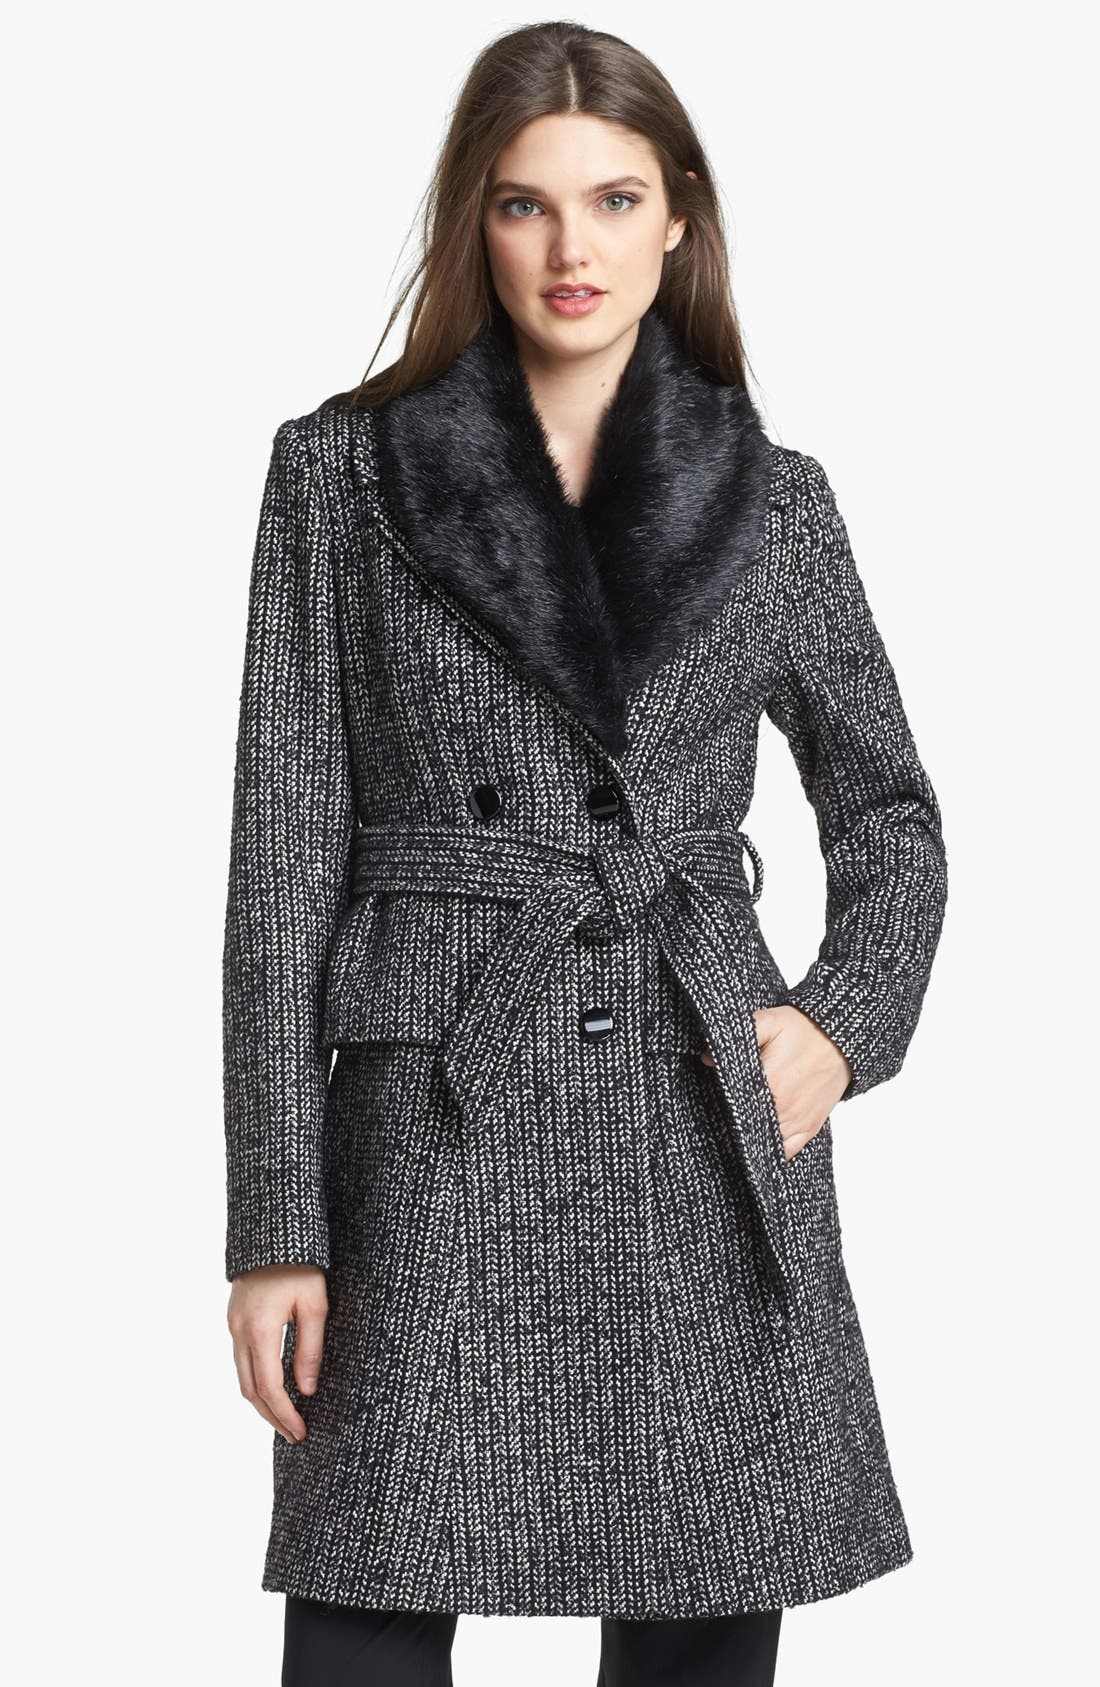 Alternate Image 1 Selected - Ivanka Trump Belted Tweed Coat with Detachable Faux Fur Collar